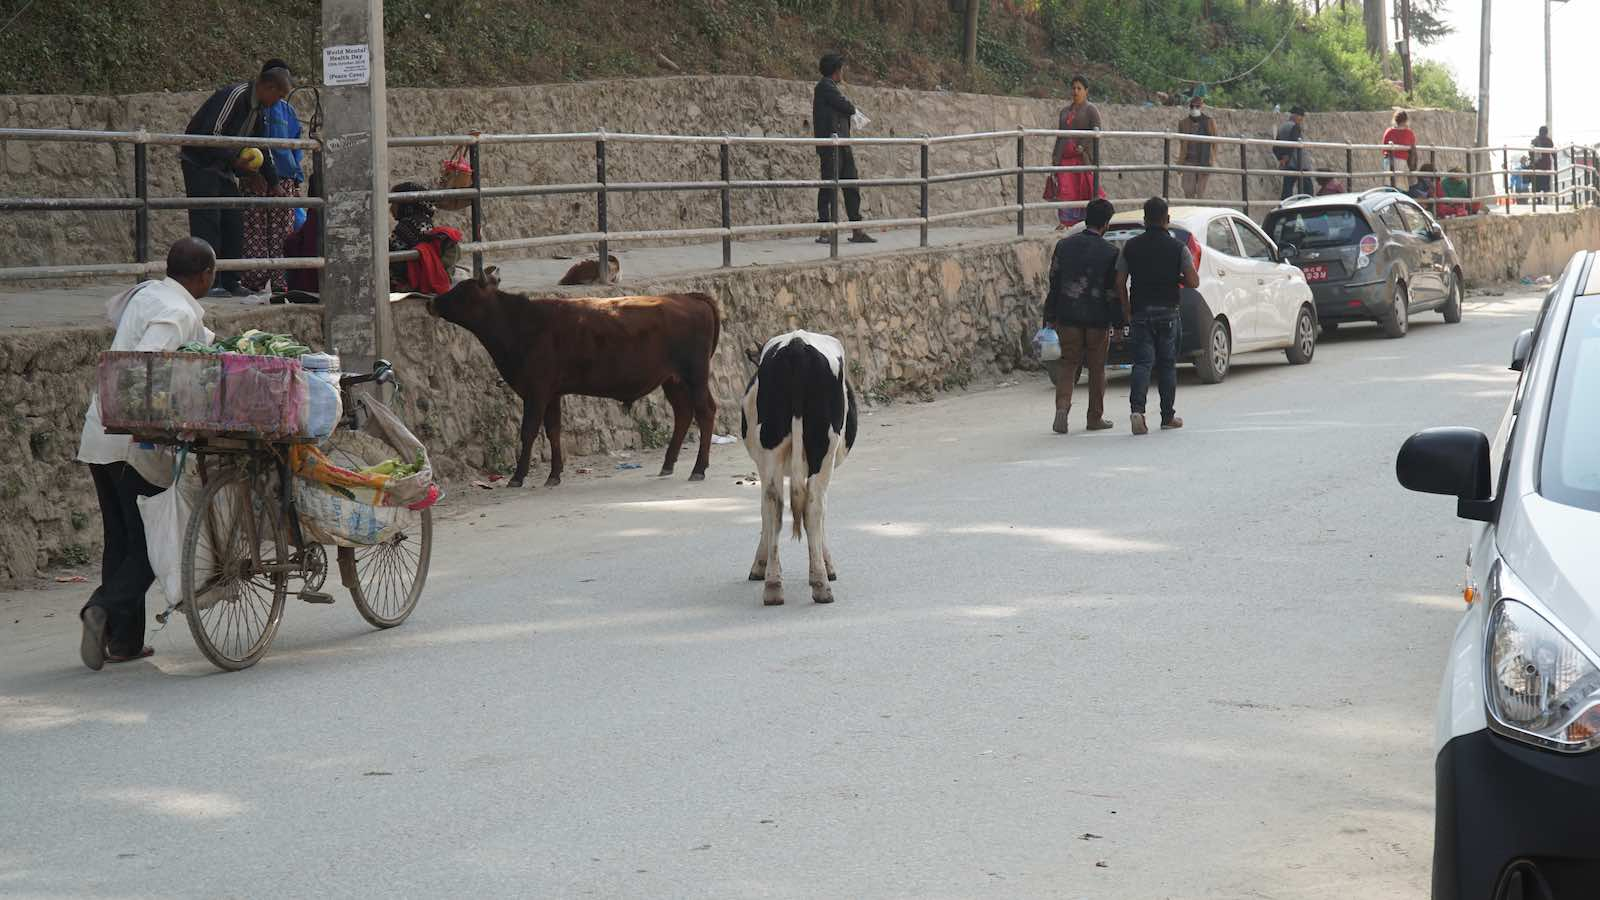 Street cows were also a common sight along the roads here.